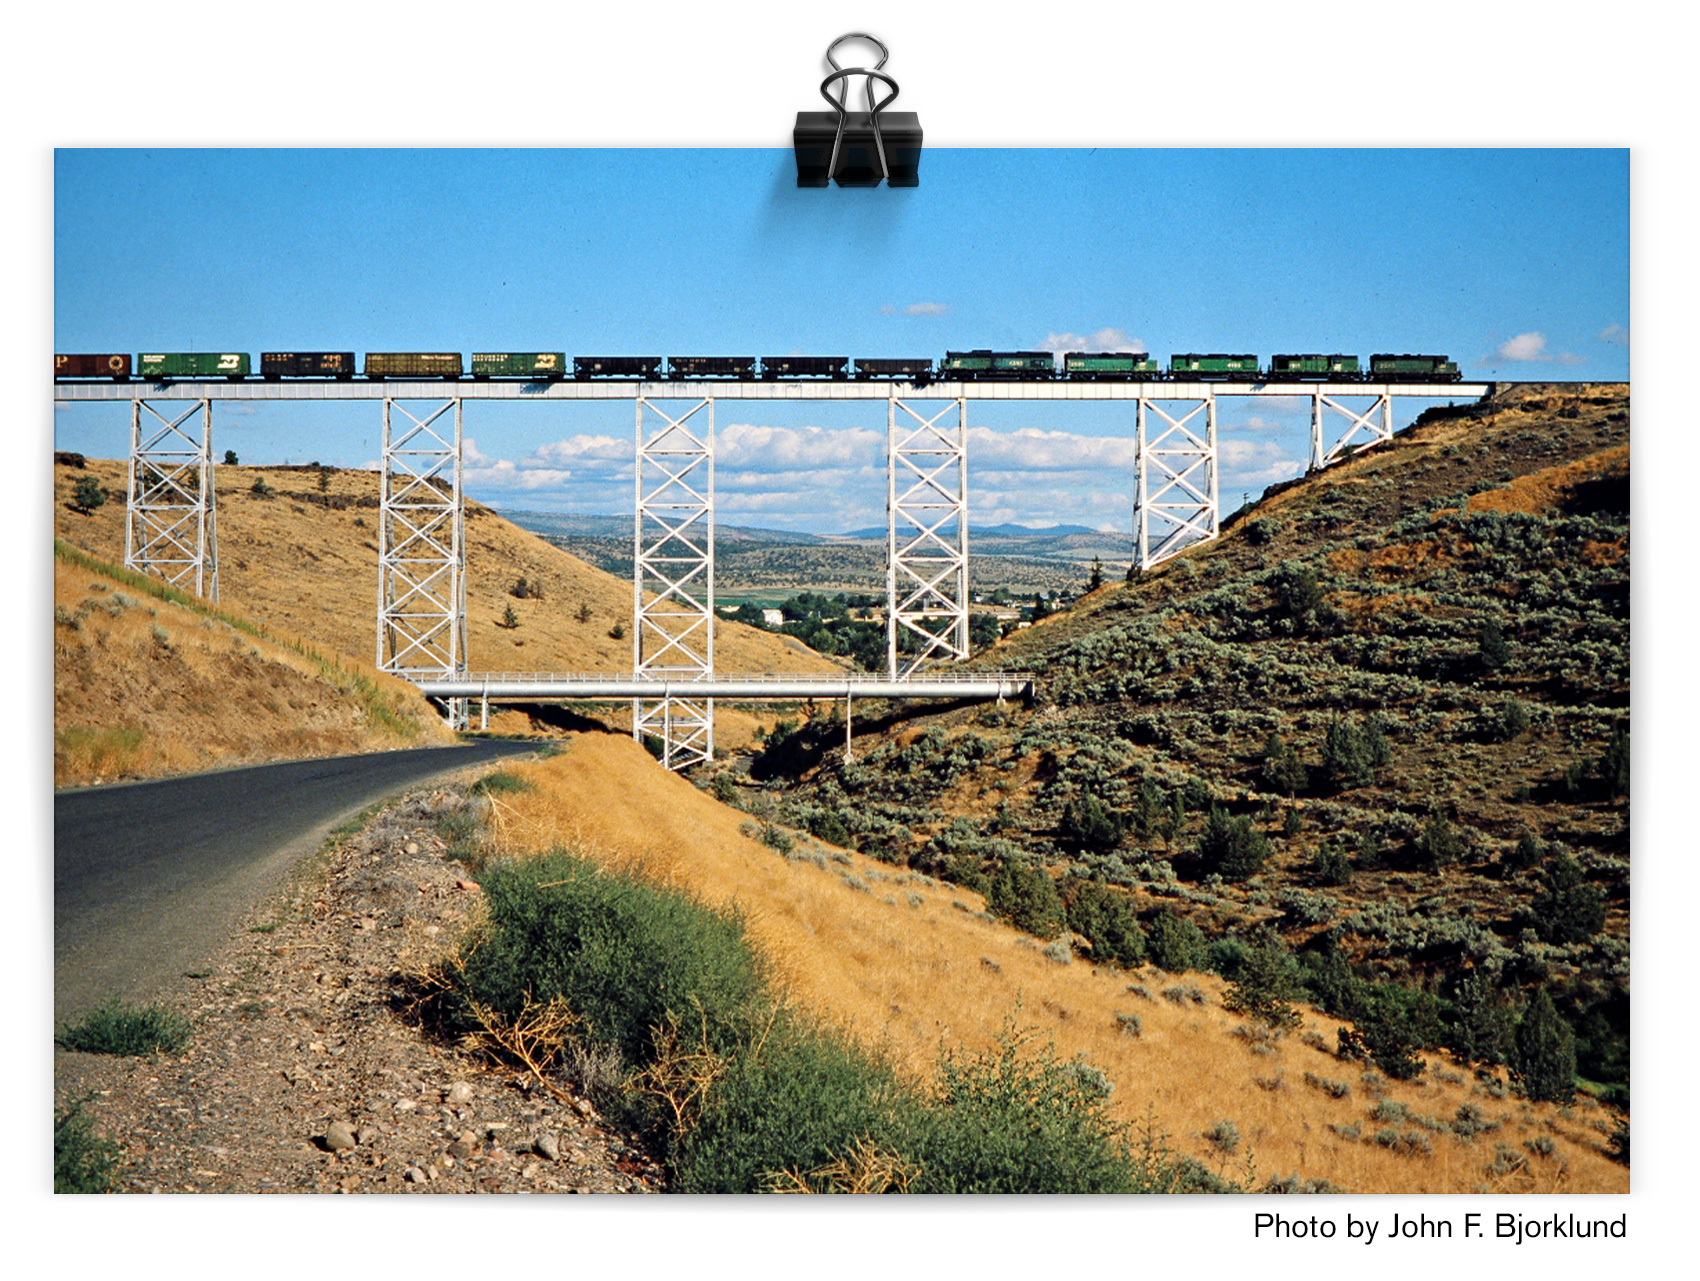 Willow Creek trestle in Madras, Oregon.